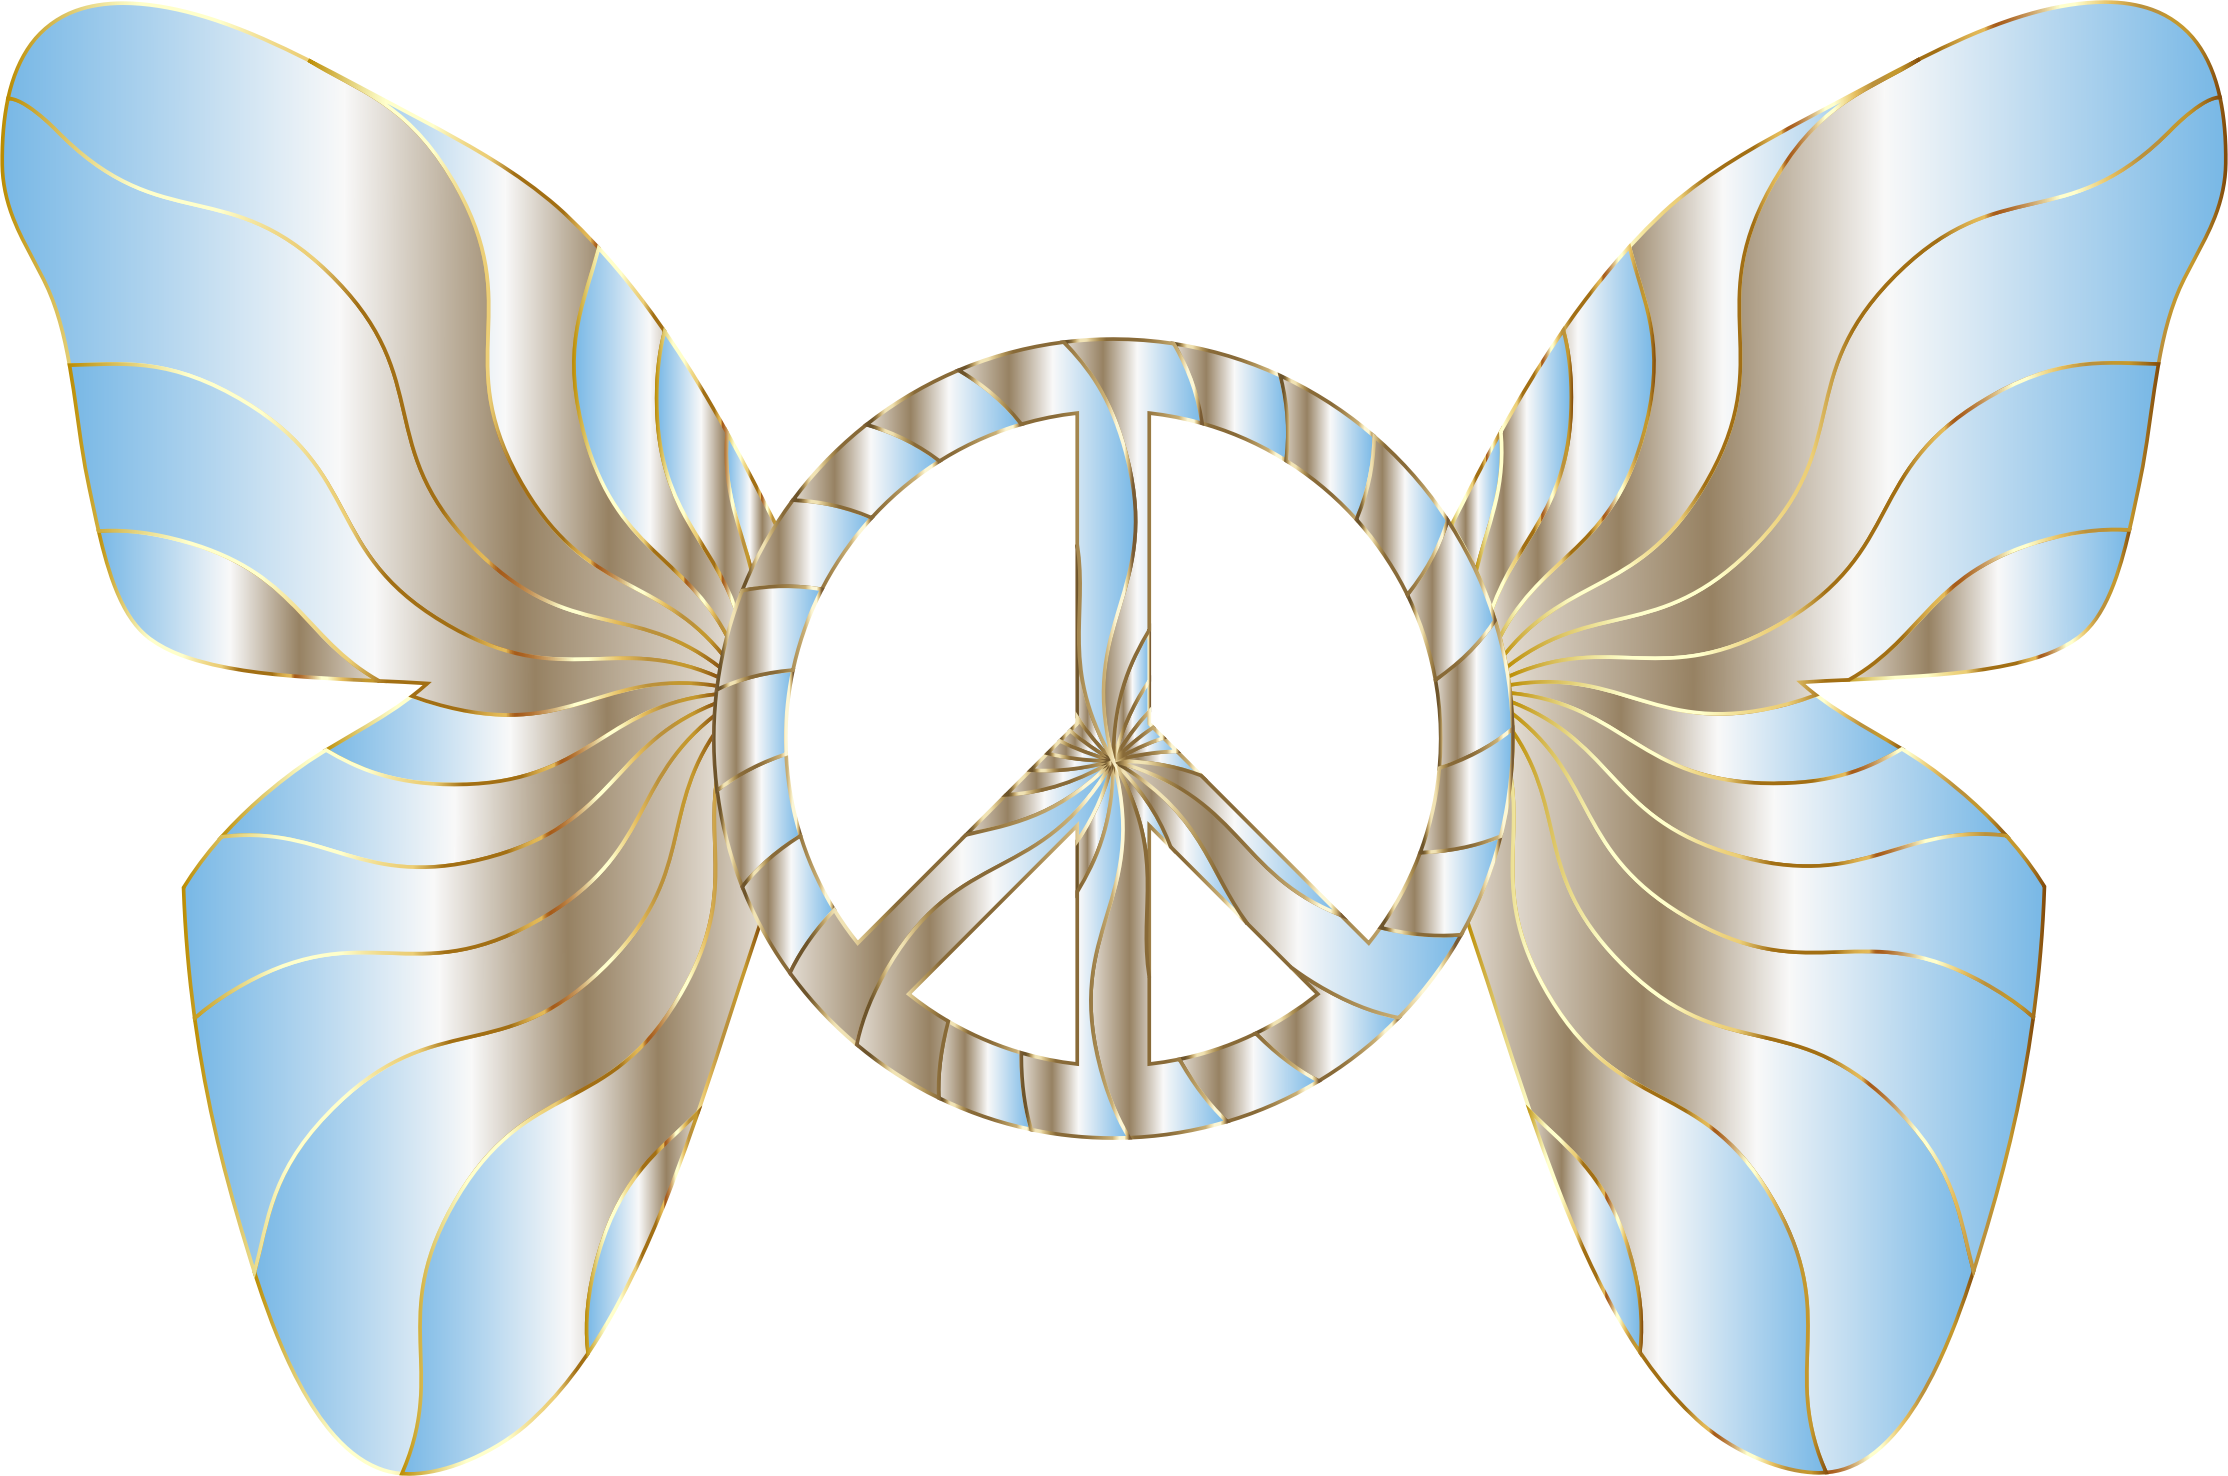 Groovy Peace Sign Butterfly 12 by GDJ